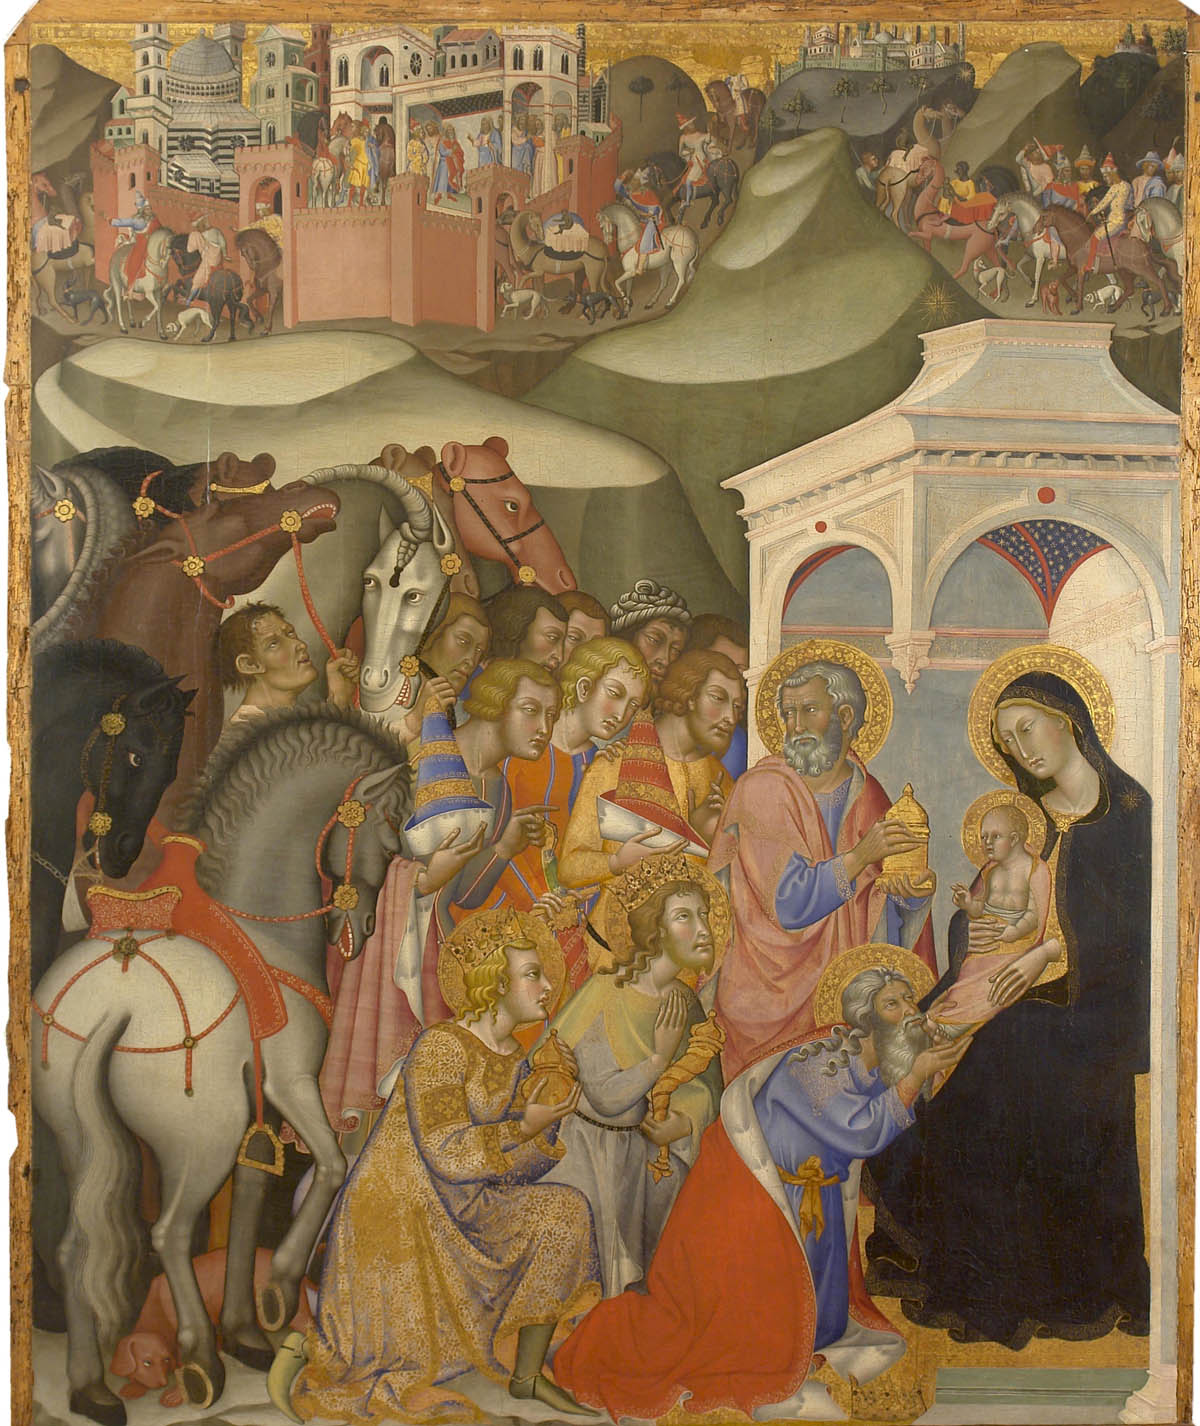 Adoration of the Magi (c. 1375-1385) Tempera on panel by Bartolo di Fredi Courtesy Ministero per i Beni e le Attivita Culturali, Pinacoteca Nazionale di Siena